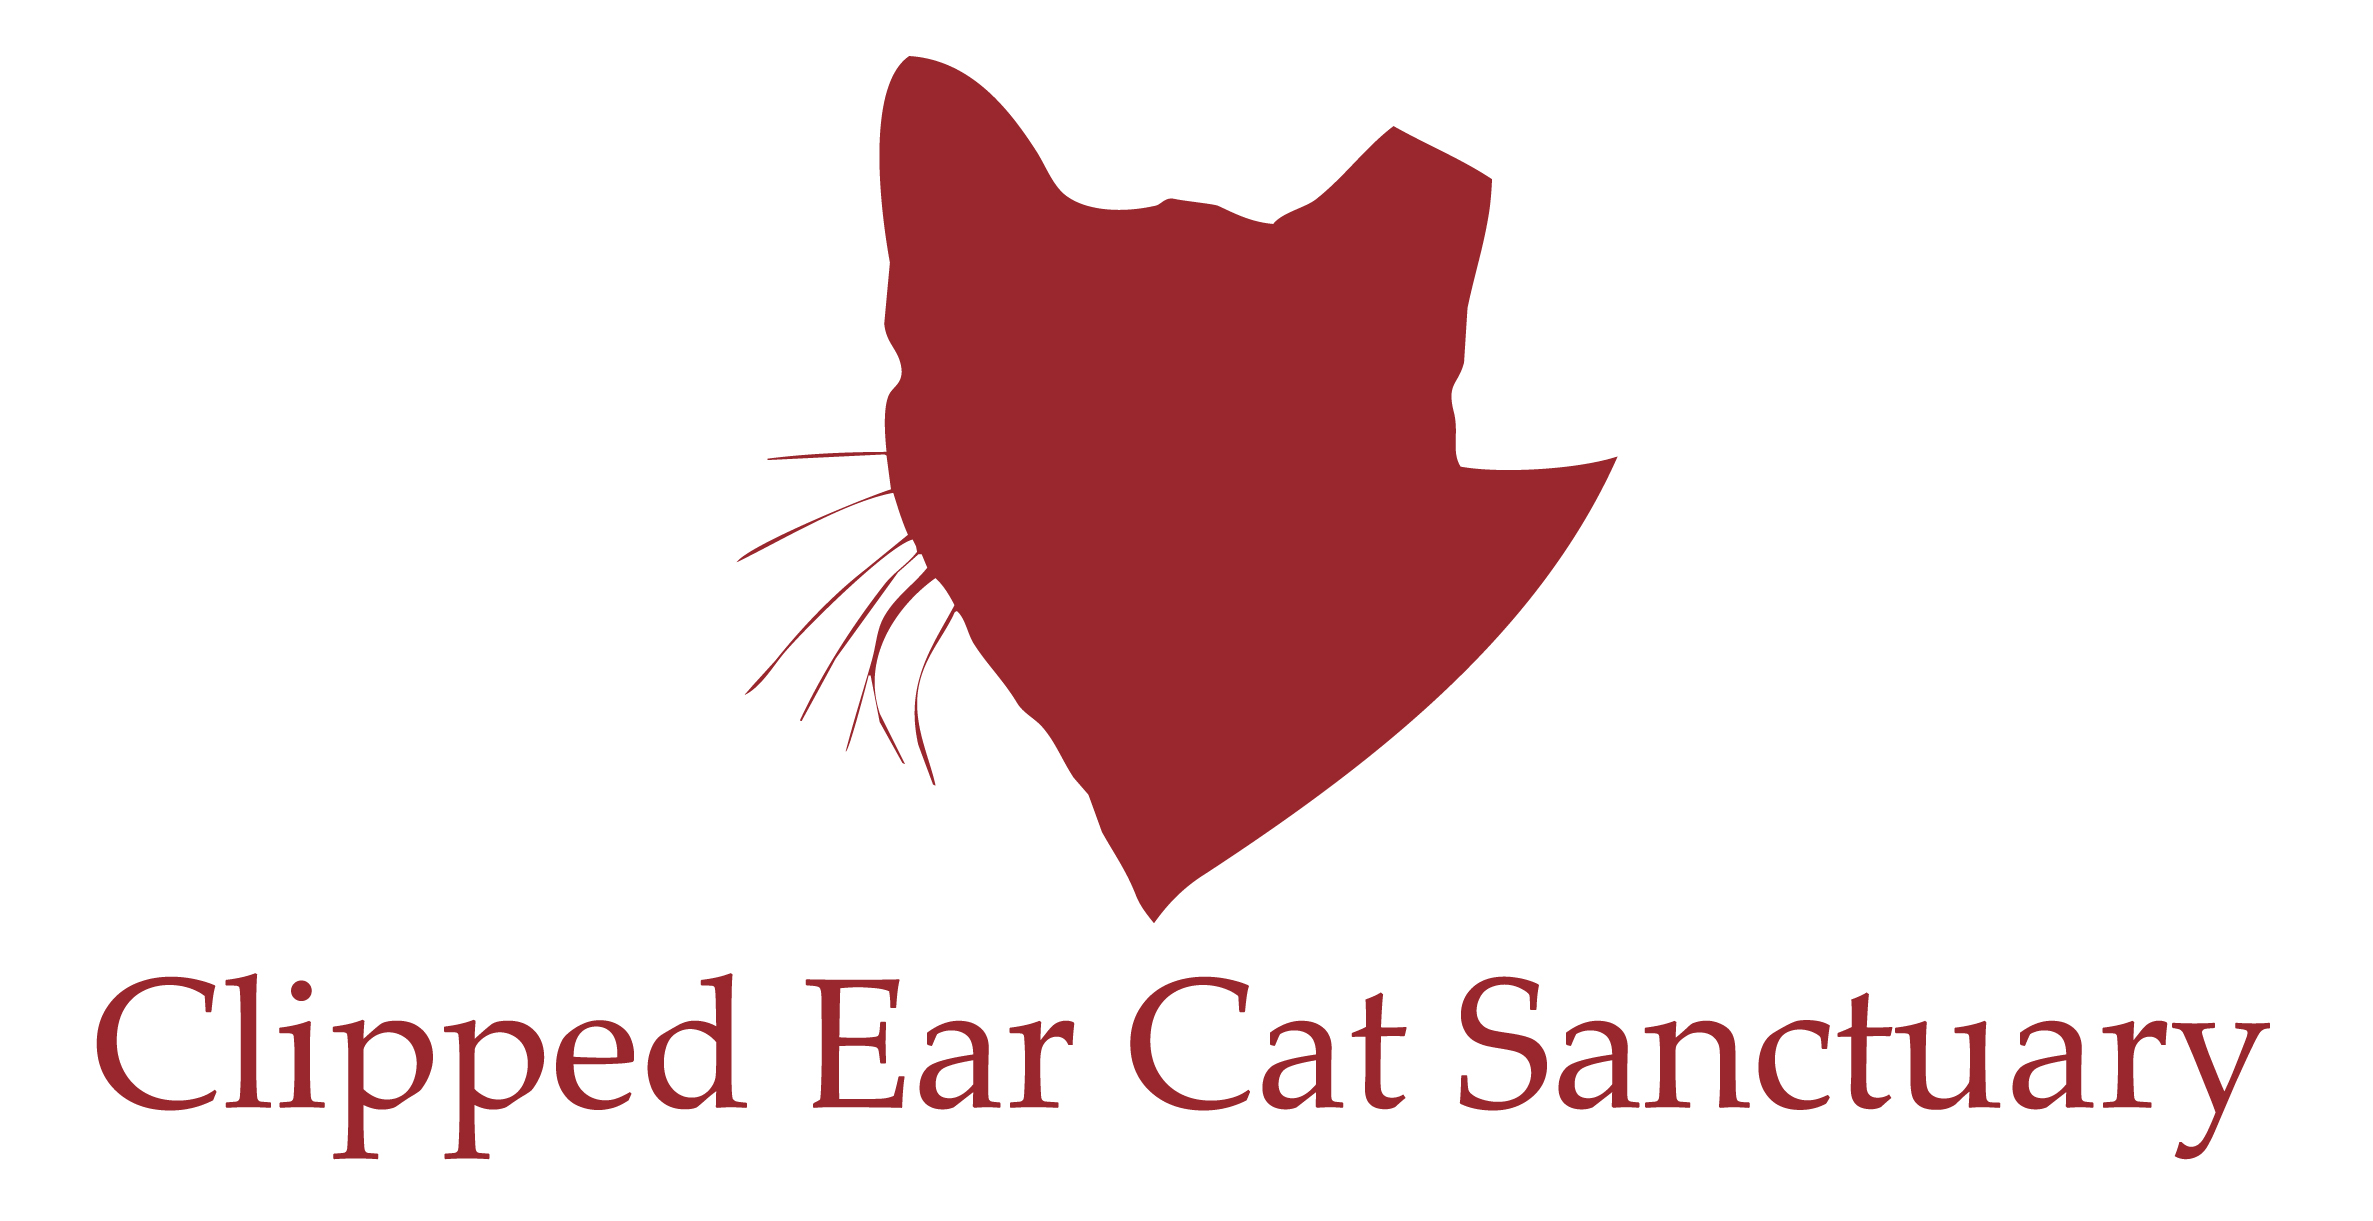 Clipped Ear Cat Sanctuary